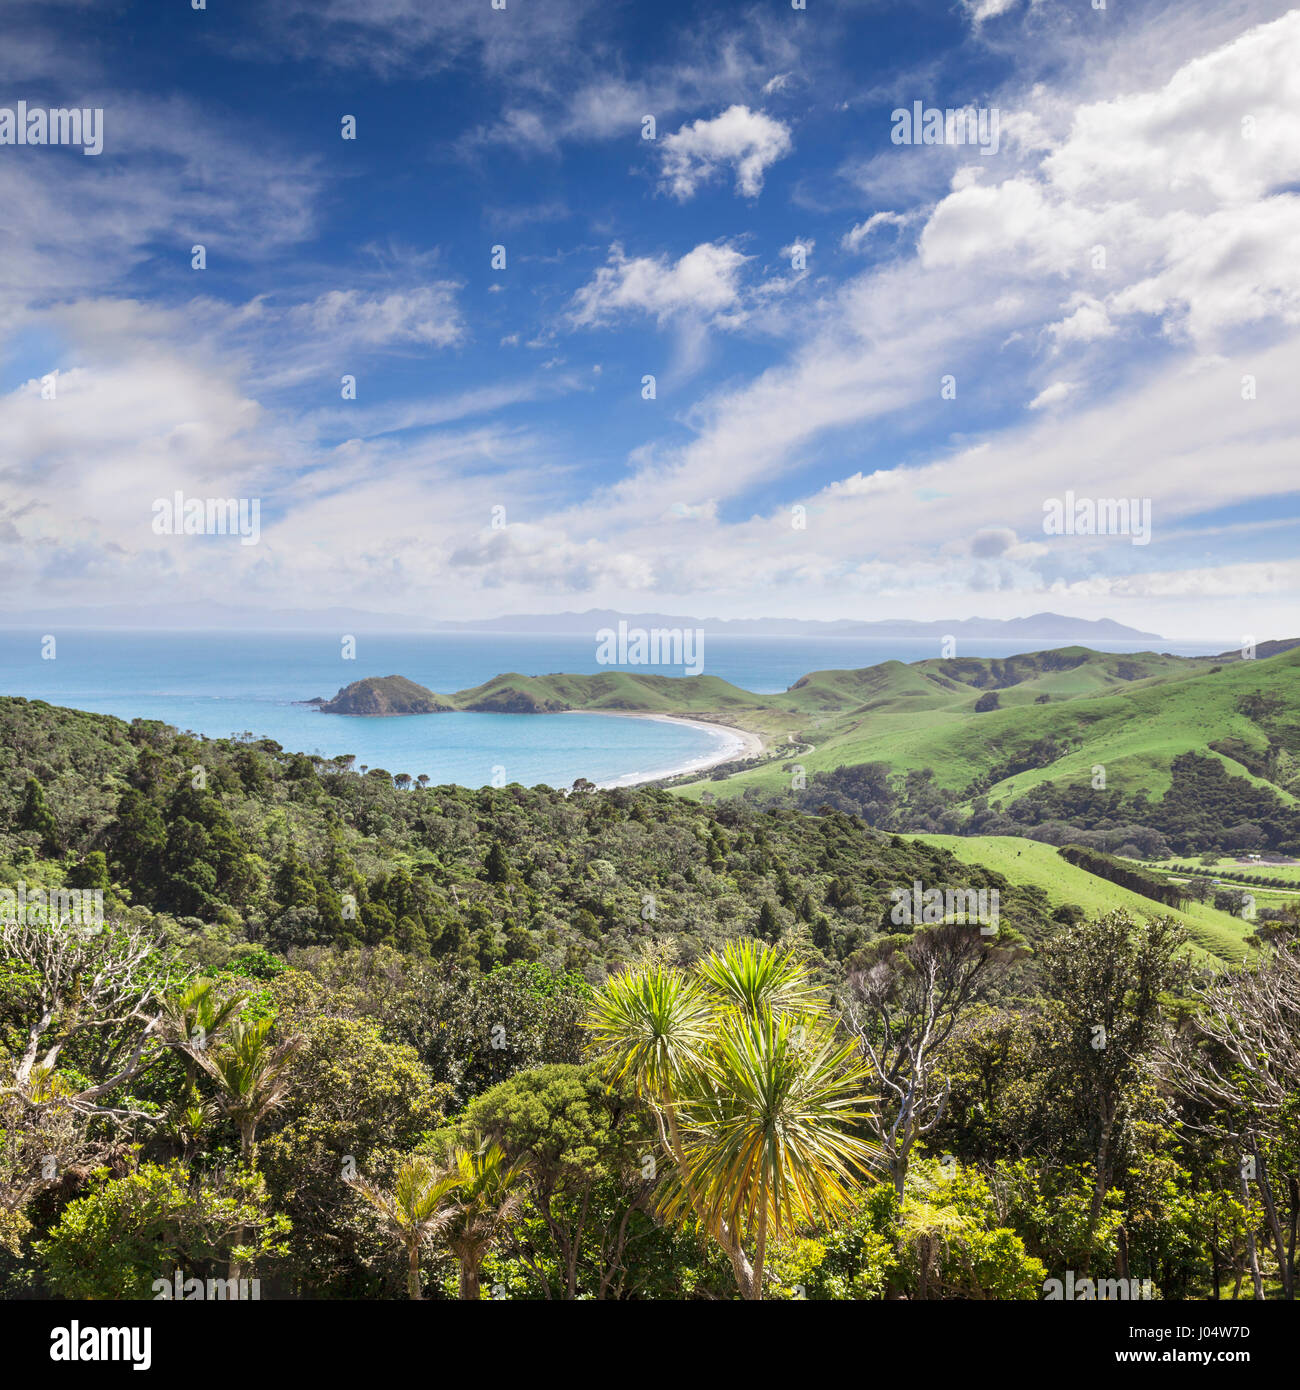 Port Jackson bay, Coromandel, New Zealand. - Stock Image